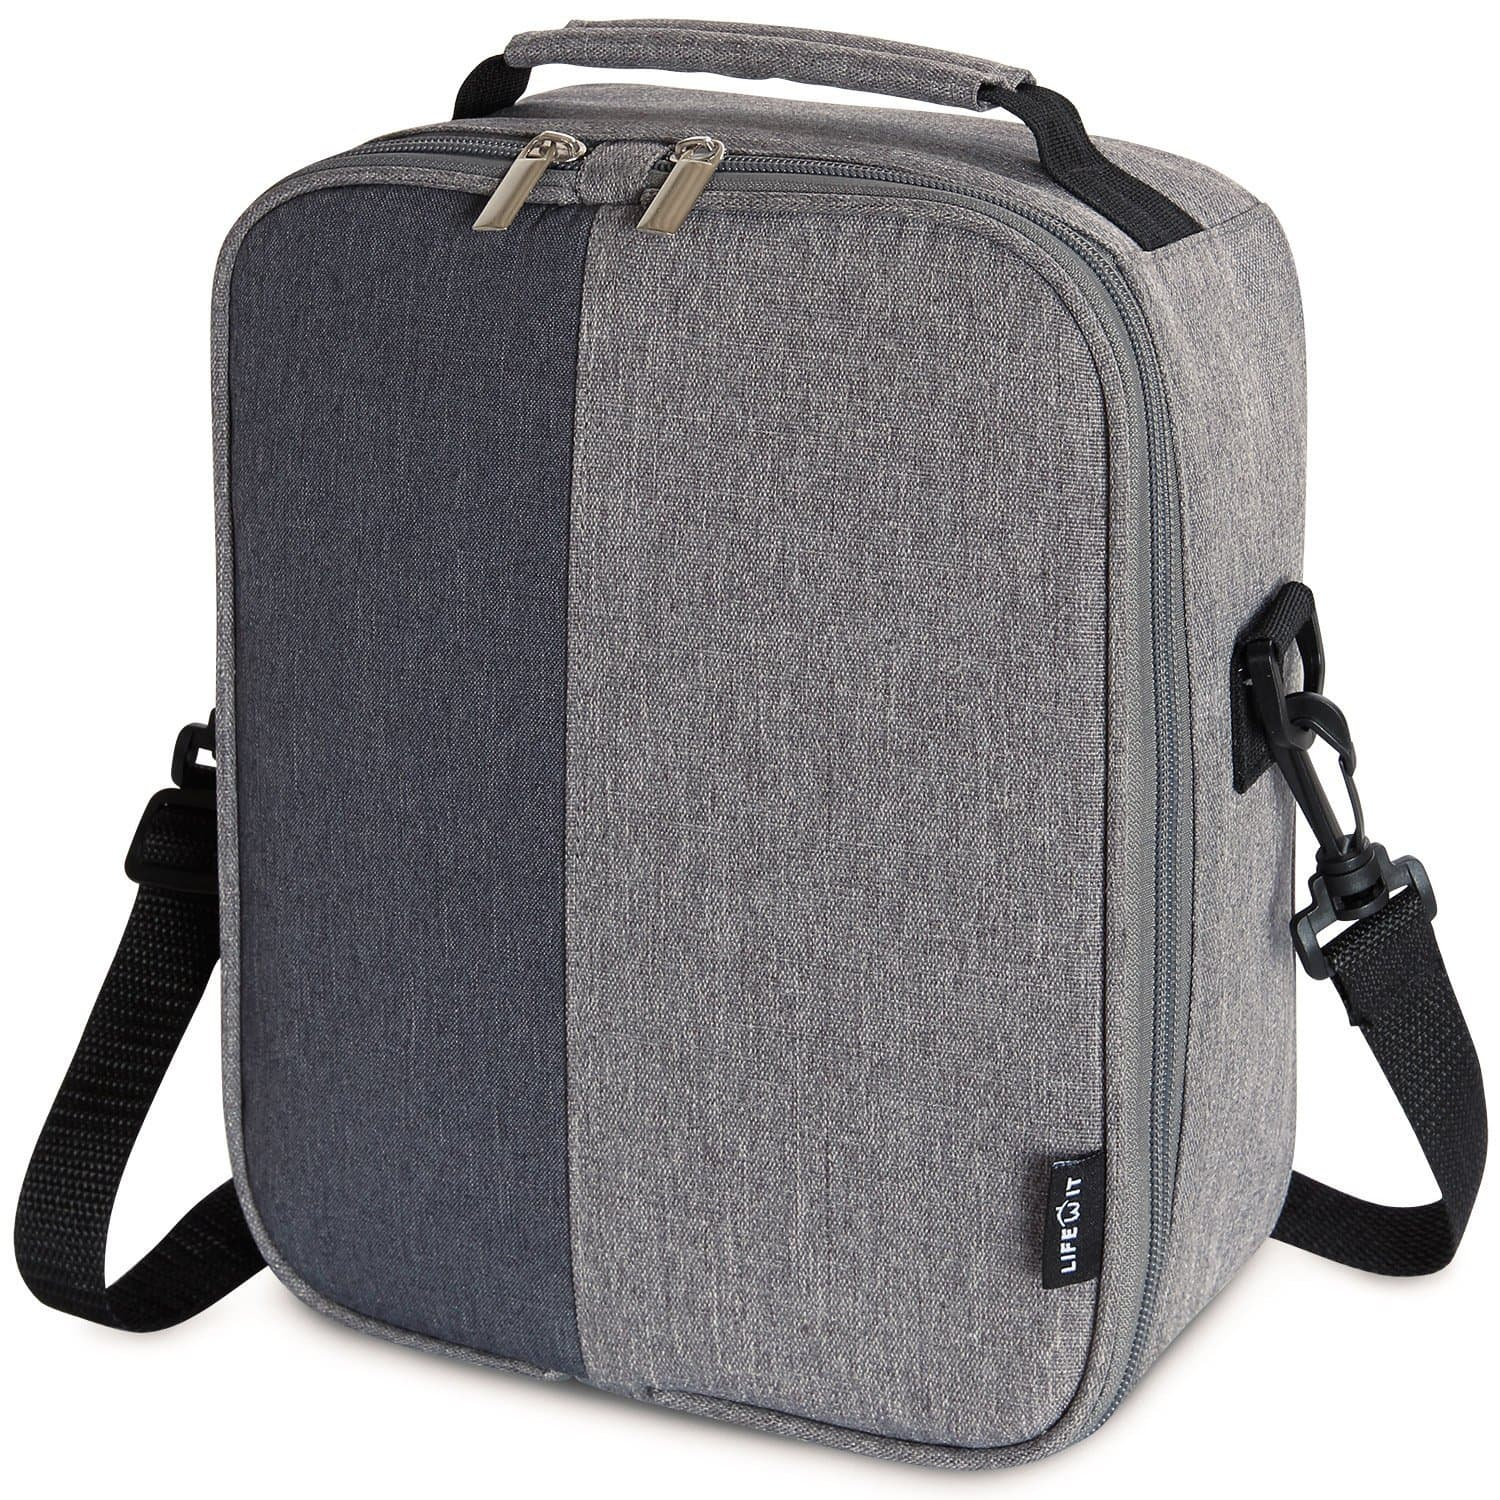 Insulated Lunch Bag with Adjustable Divider - Grey [2 Pocket] - $9.89